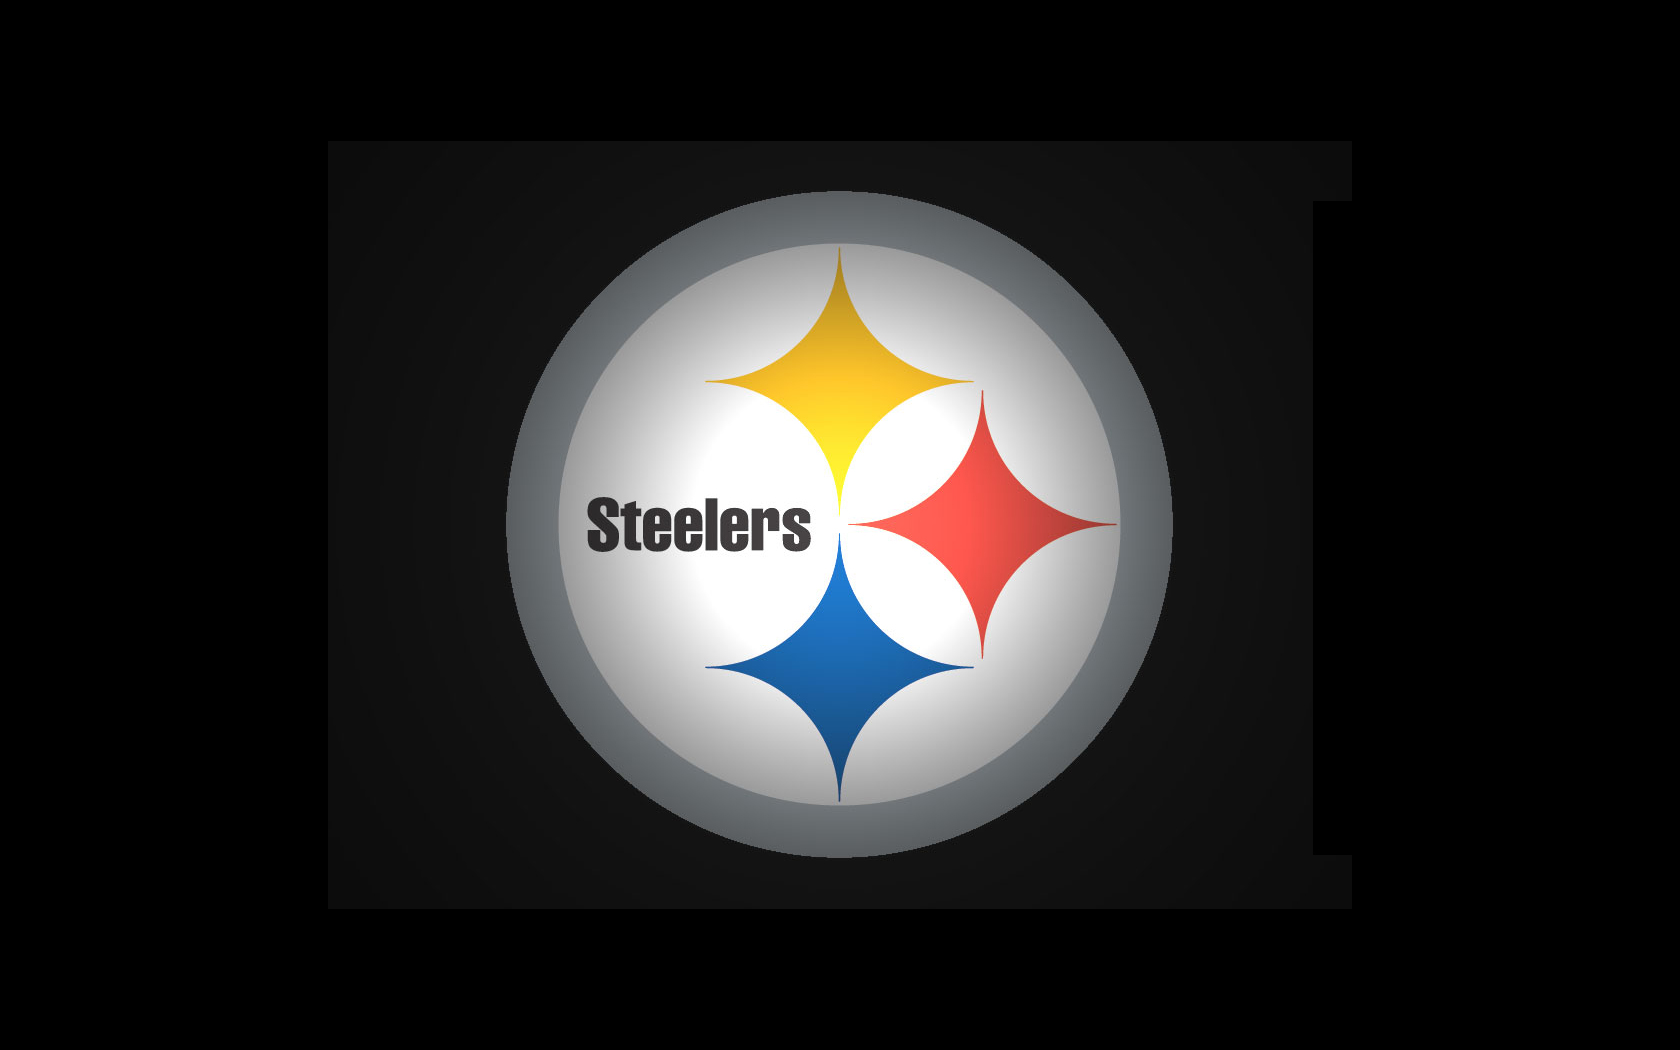 Steelers wallpaper background Pittsburgh Steelers wallpapers 1680x1050